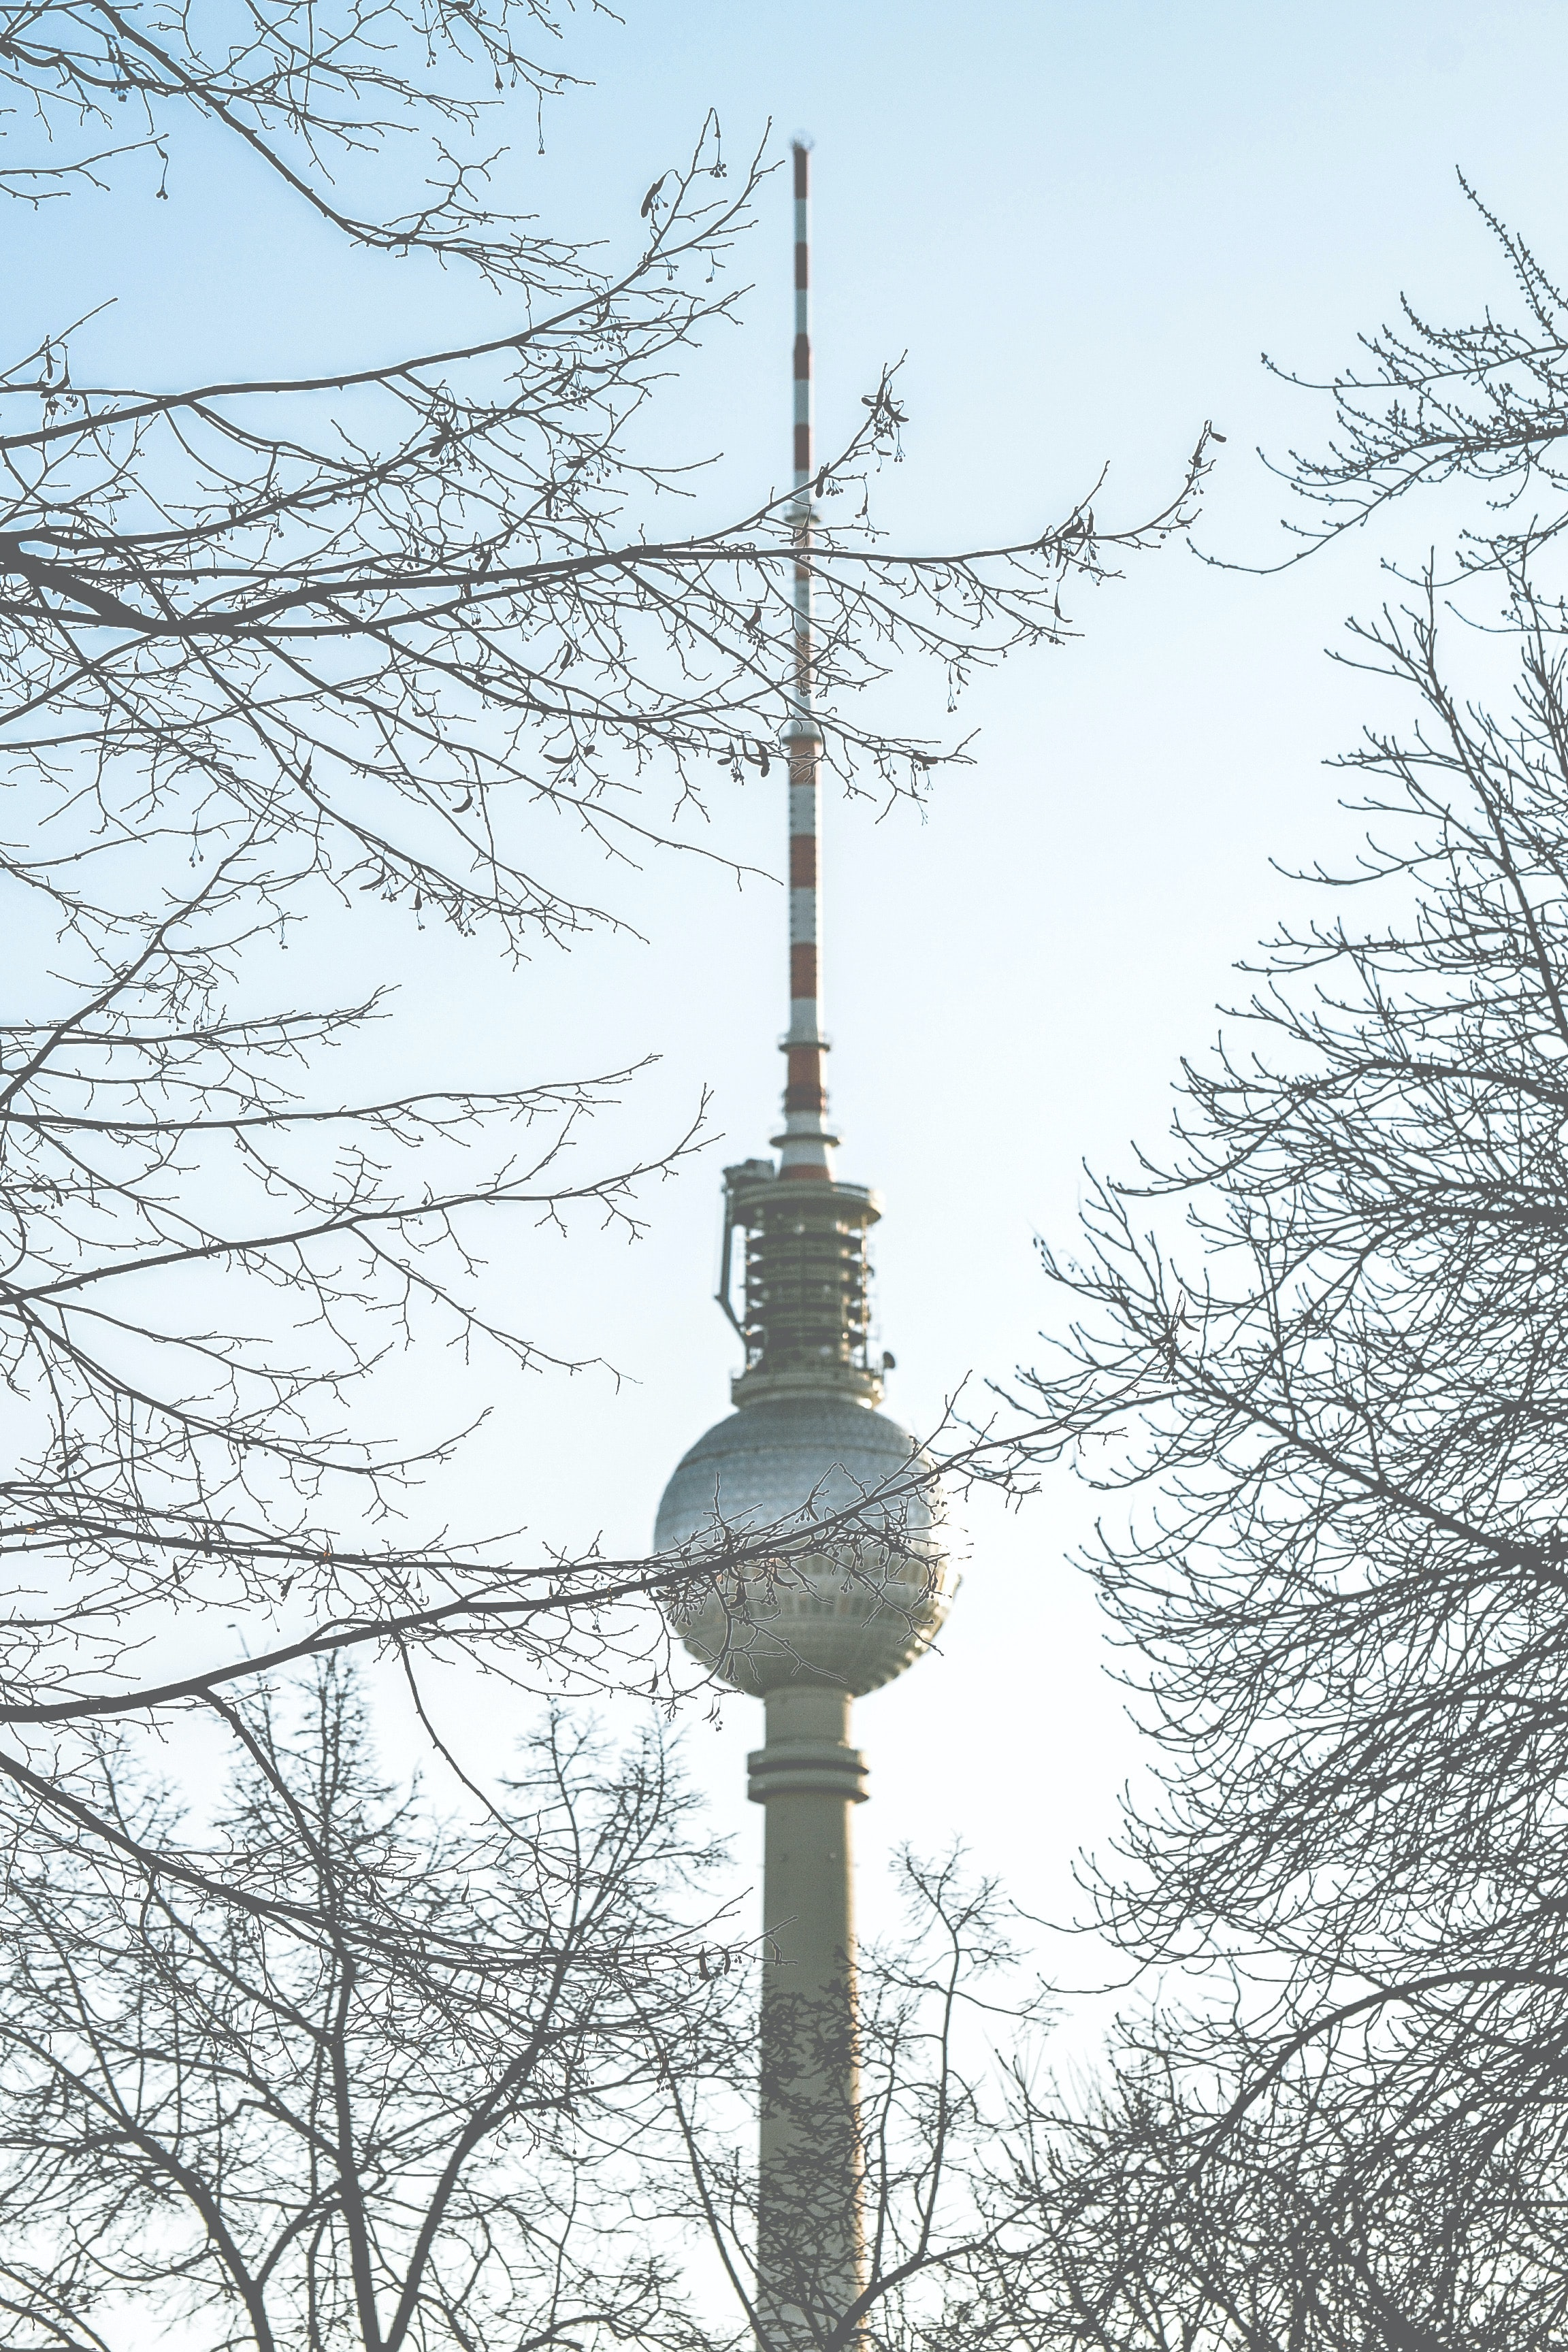 Berlin Tower captured with bare trees under clear blue sky